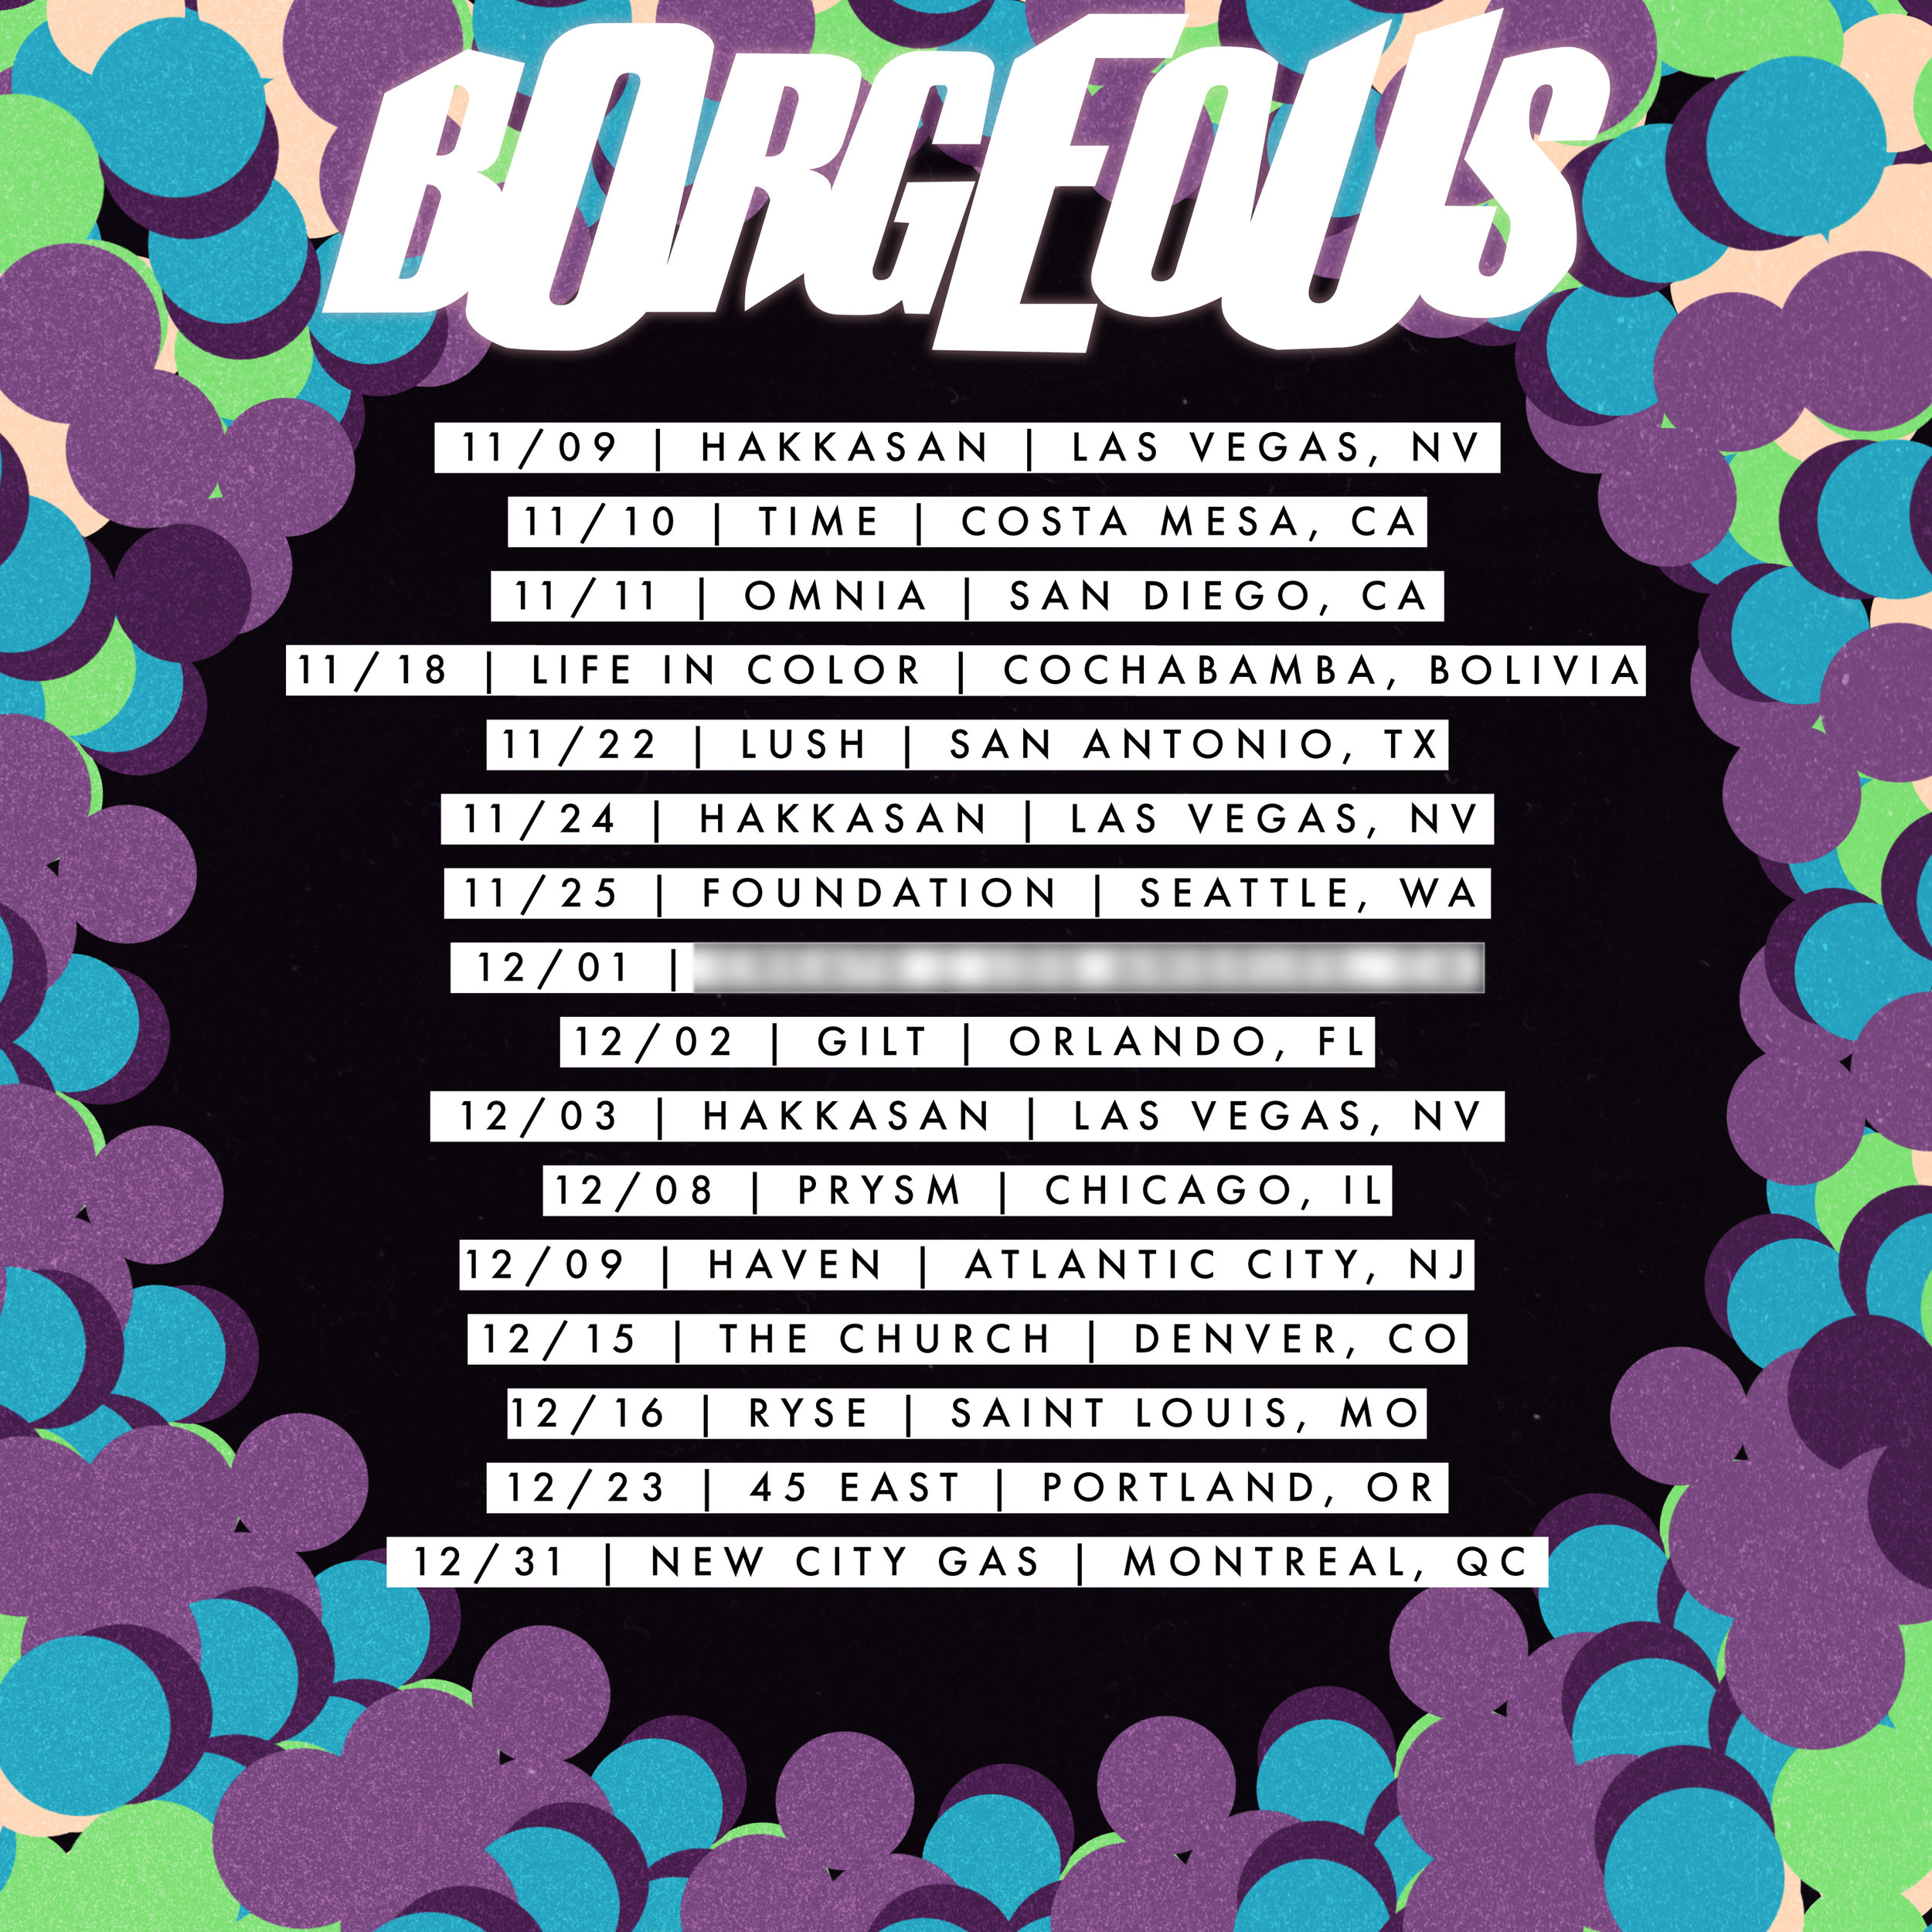 Borgeous, Winter 2017 Tour Admat